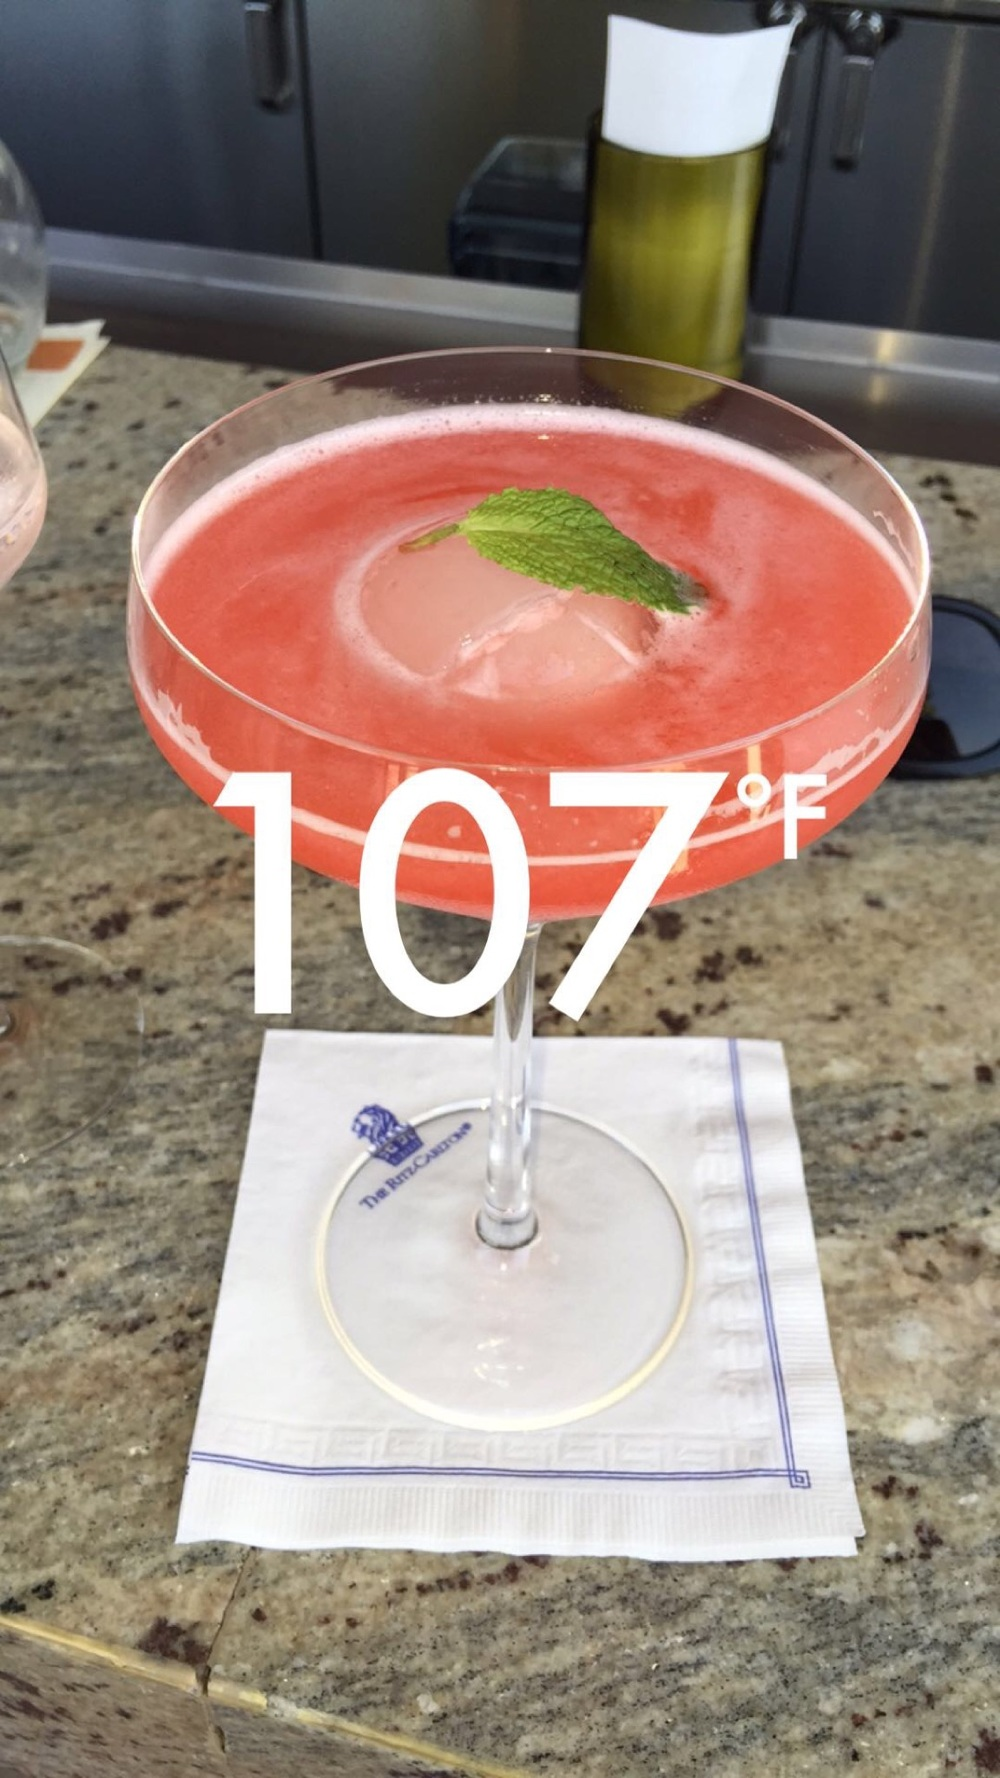 107*, Strawberry specialty cocktail from State Fare bar